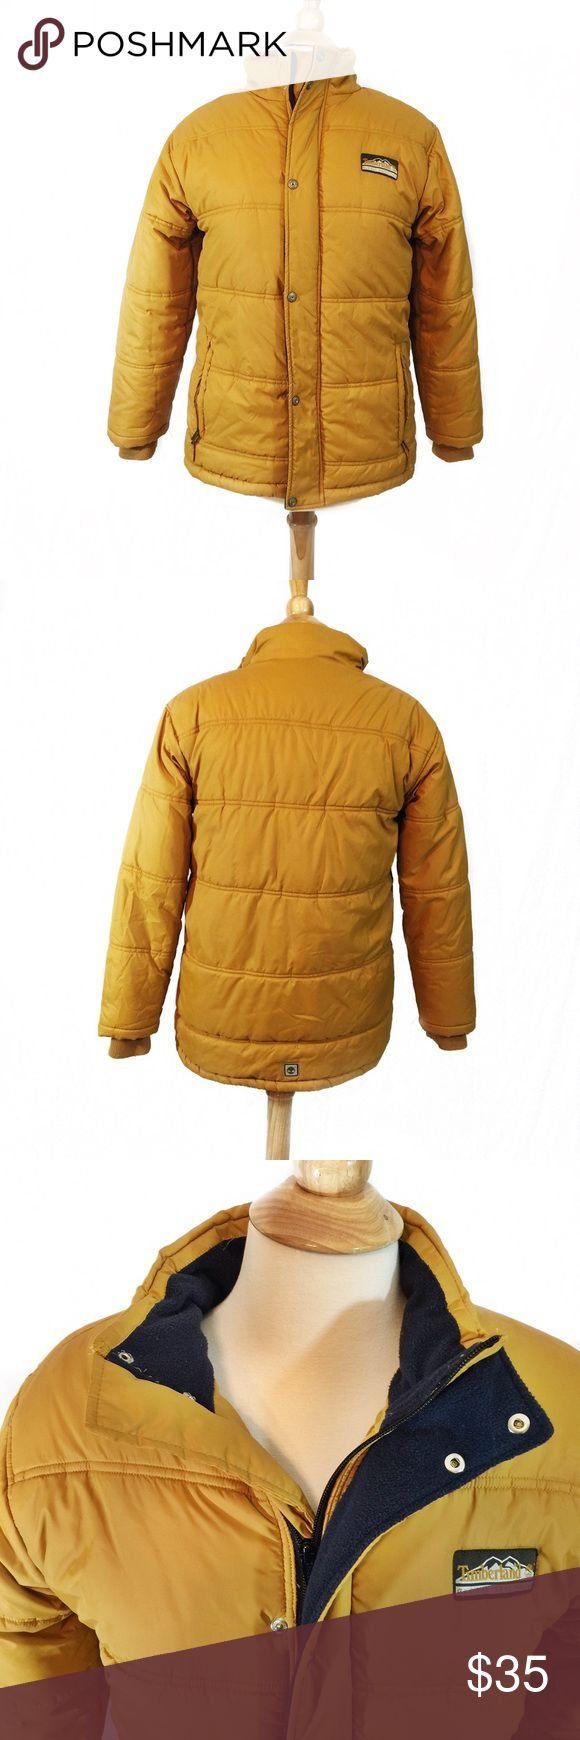 Unisex Timberland Mustard Color Puffer Jacket 🔹Great condition🔹Has fleece lining to keep you warm🔹2 front pockets🔹2 inner pockets🔹Has drawstrings at the bottom to do away with wind🔹Bust/Chest: 38-40 inches 🔹Size: Large 🔹Length from shoulder to bottom hem: 27 inches🔹Sleeves length with cuff: 24 inches🔹Shell: 100% nylon 🔹Lining: 100% polyester🔹Care: Machine wash cold 🔹This is a unisex jacket. Please check the measurements listed here to make sure this will fit you❄️You'd be glad…